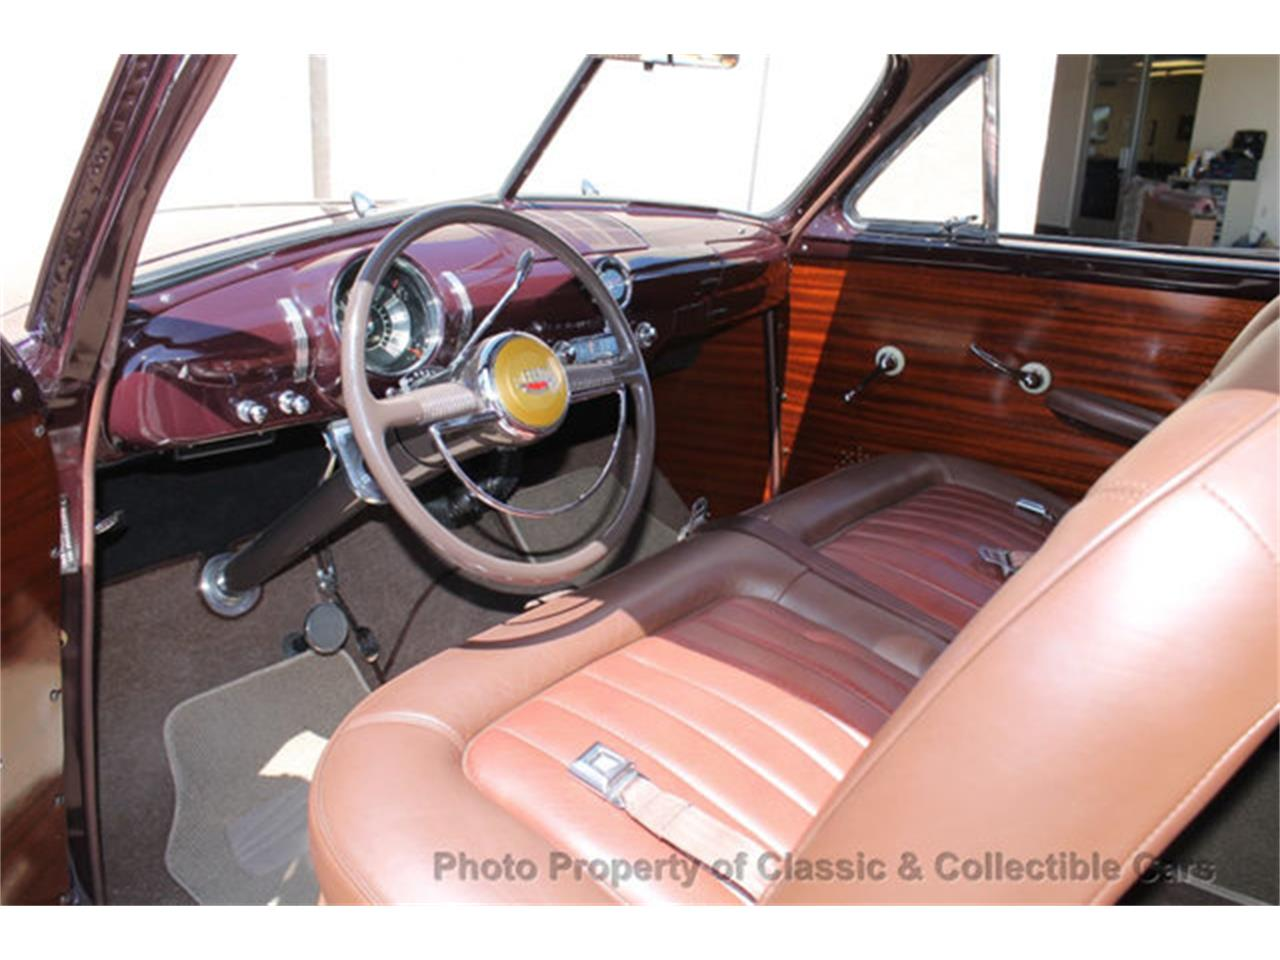 Large Picture of '49 Ford Deluxe - $59,500.00 Offered by Classic and Collectible Cars - NE8P